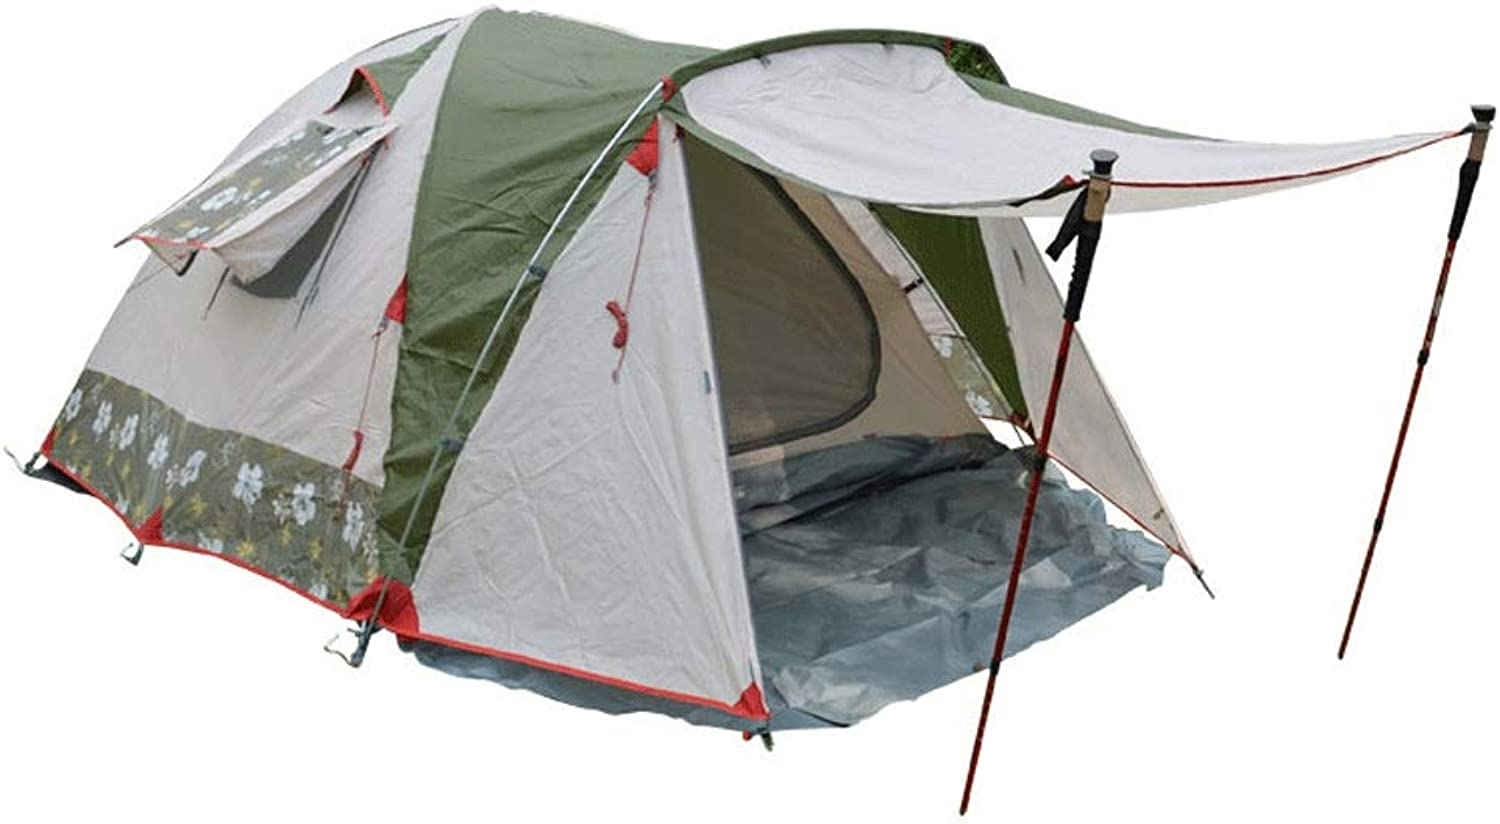 Outdoor Tent 34 People Aluminum Pole Camping Height 130cm Family Three Seasons Windproof rain Tent 2 People Wild Beach Camping Equipment Instant Set